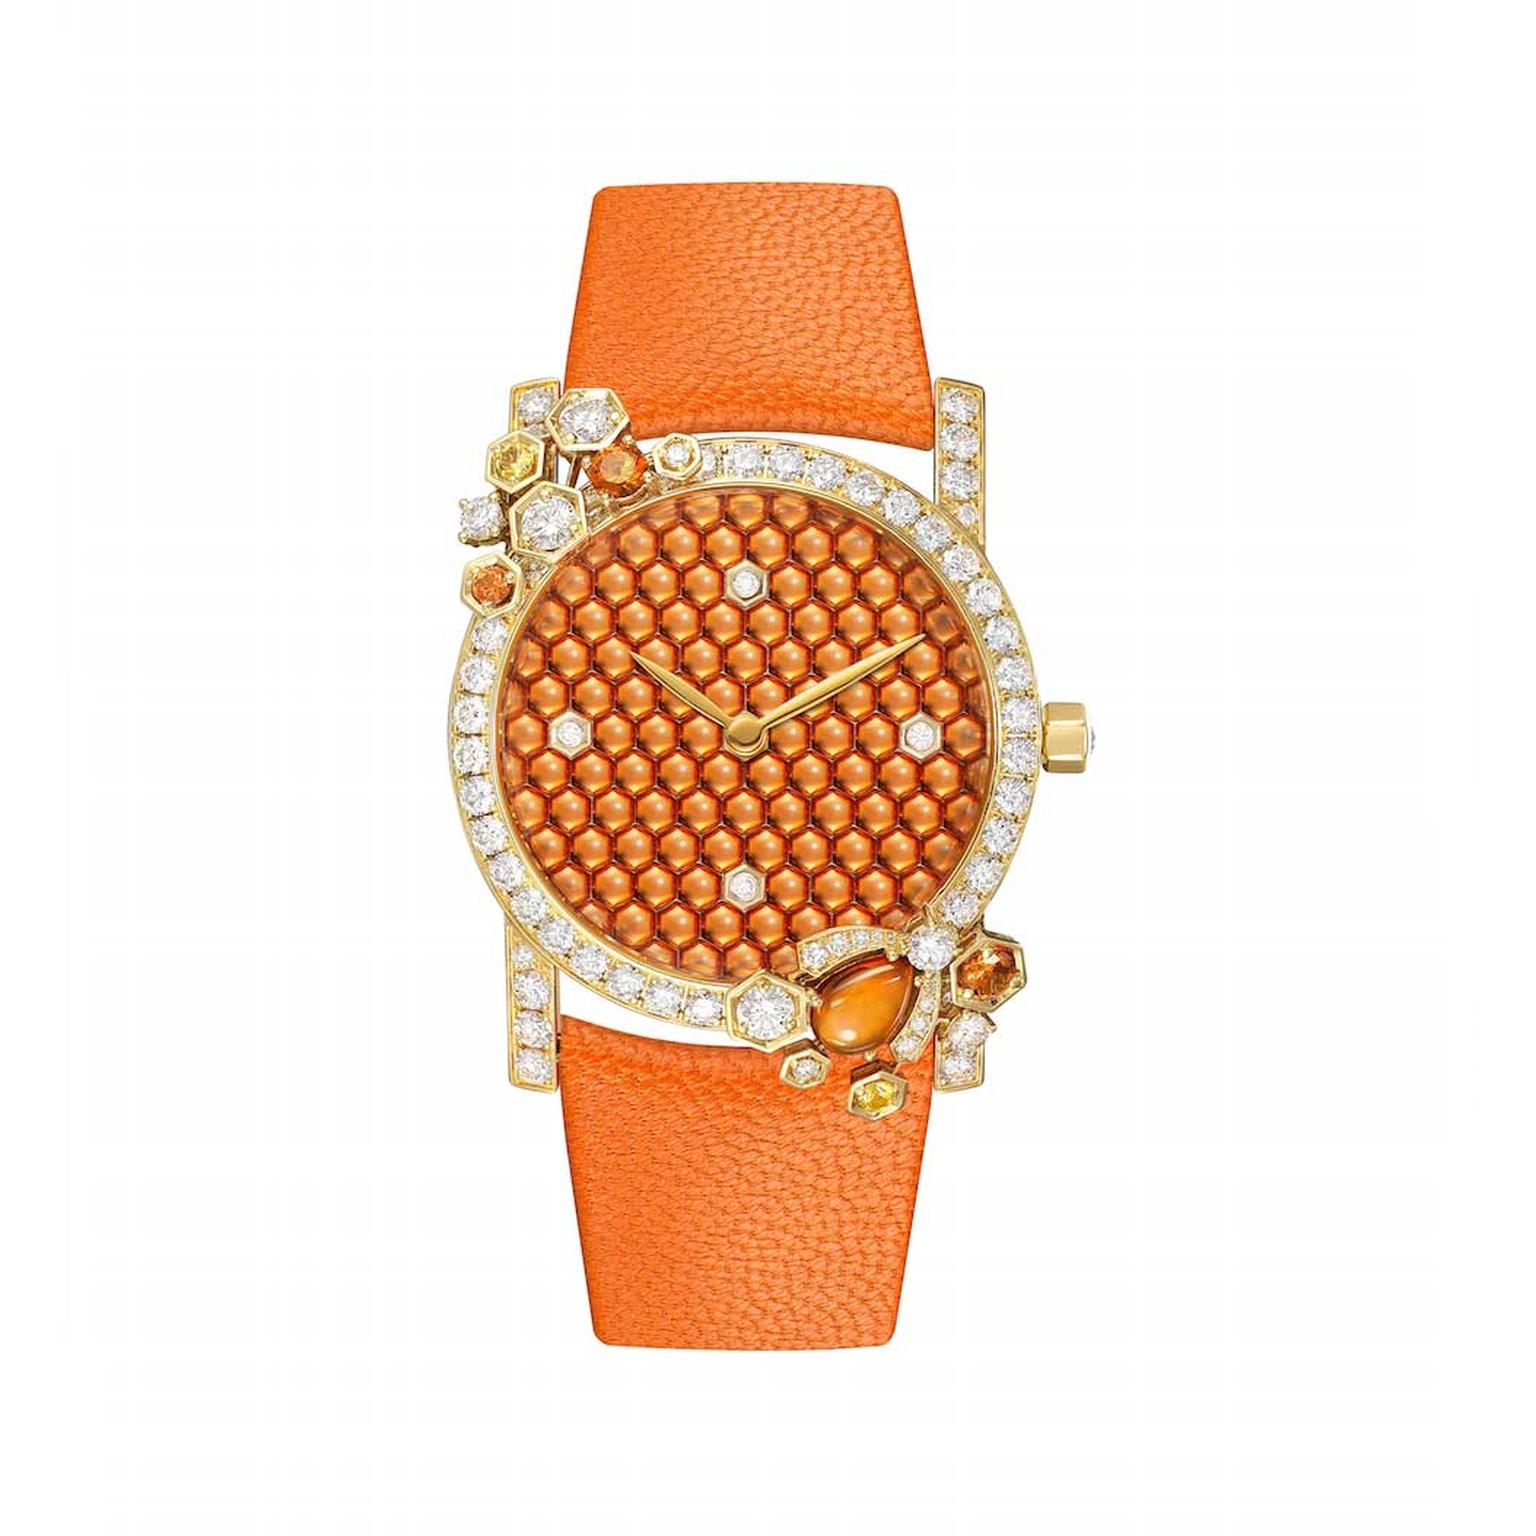 Chaumet Attrape moi watch with bees